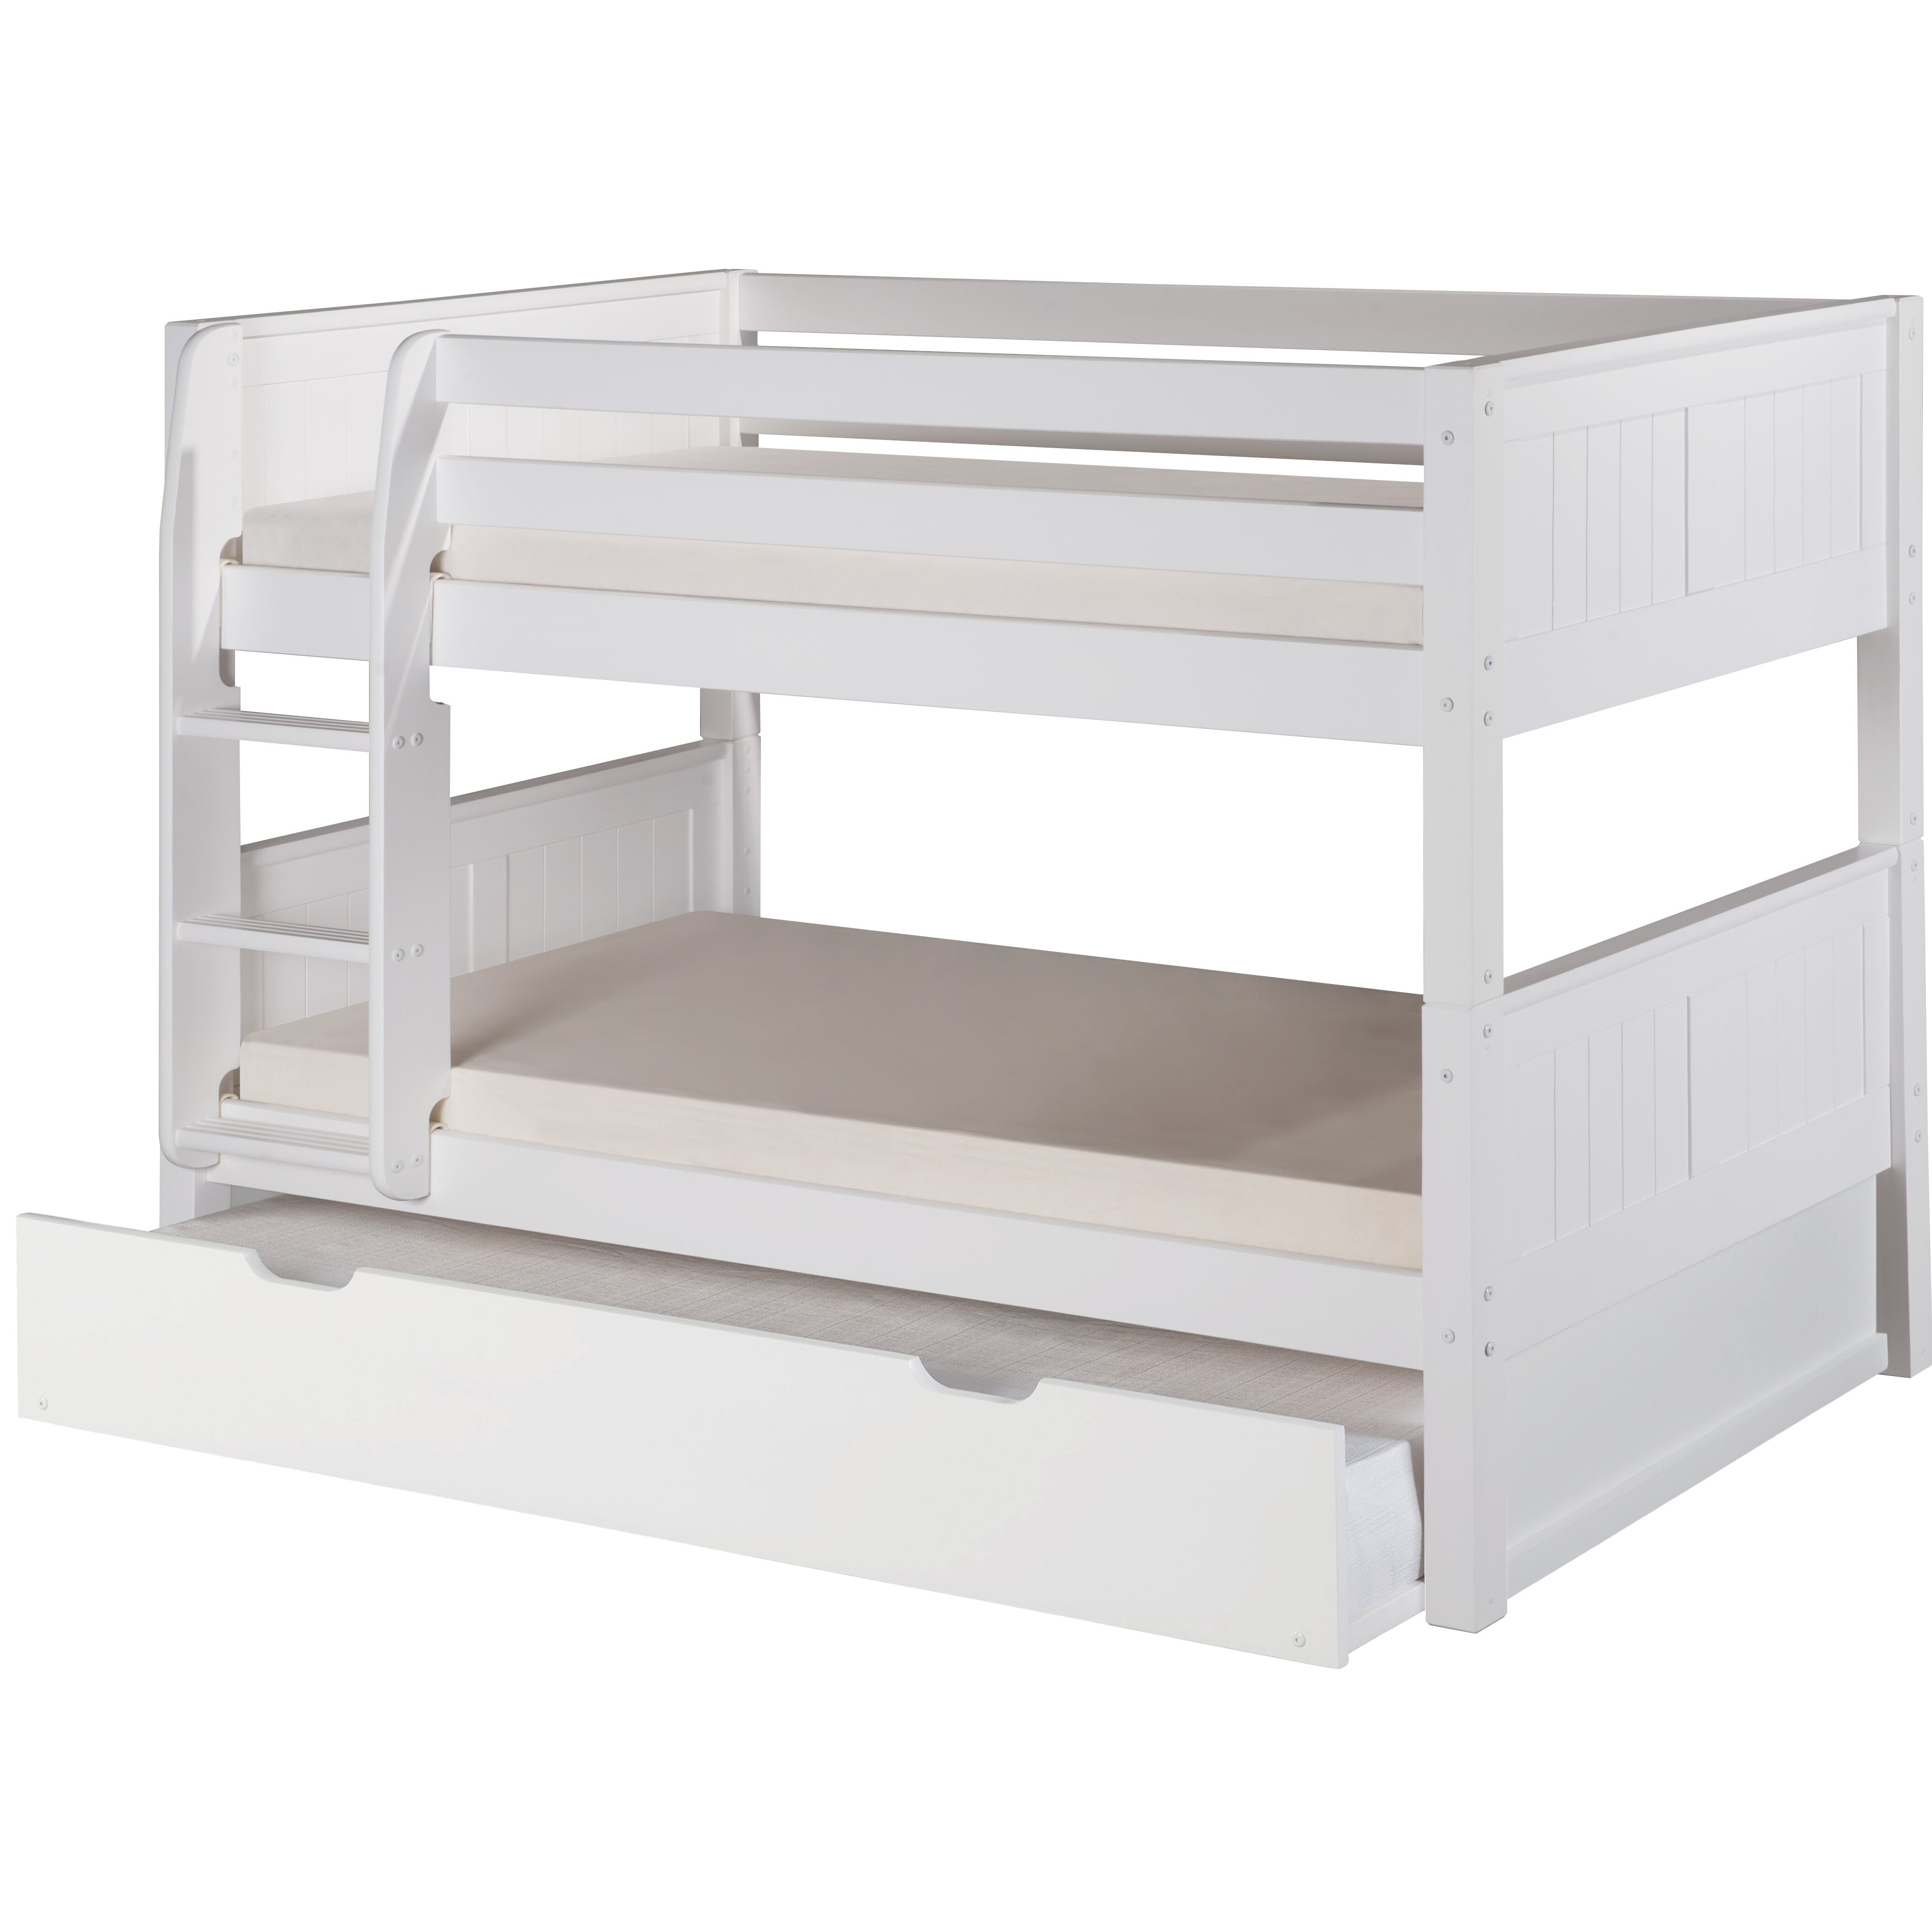 camaflexi camaflexi low twin bunk bed with trundle reviews wayfair. Black Bedroom Furniture Sets. Home Design Ideas